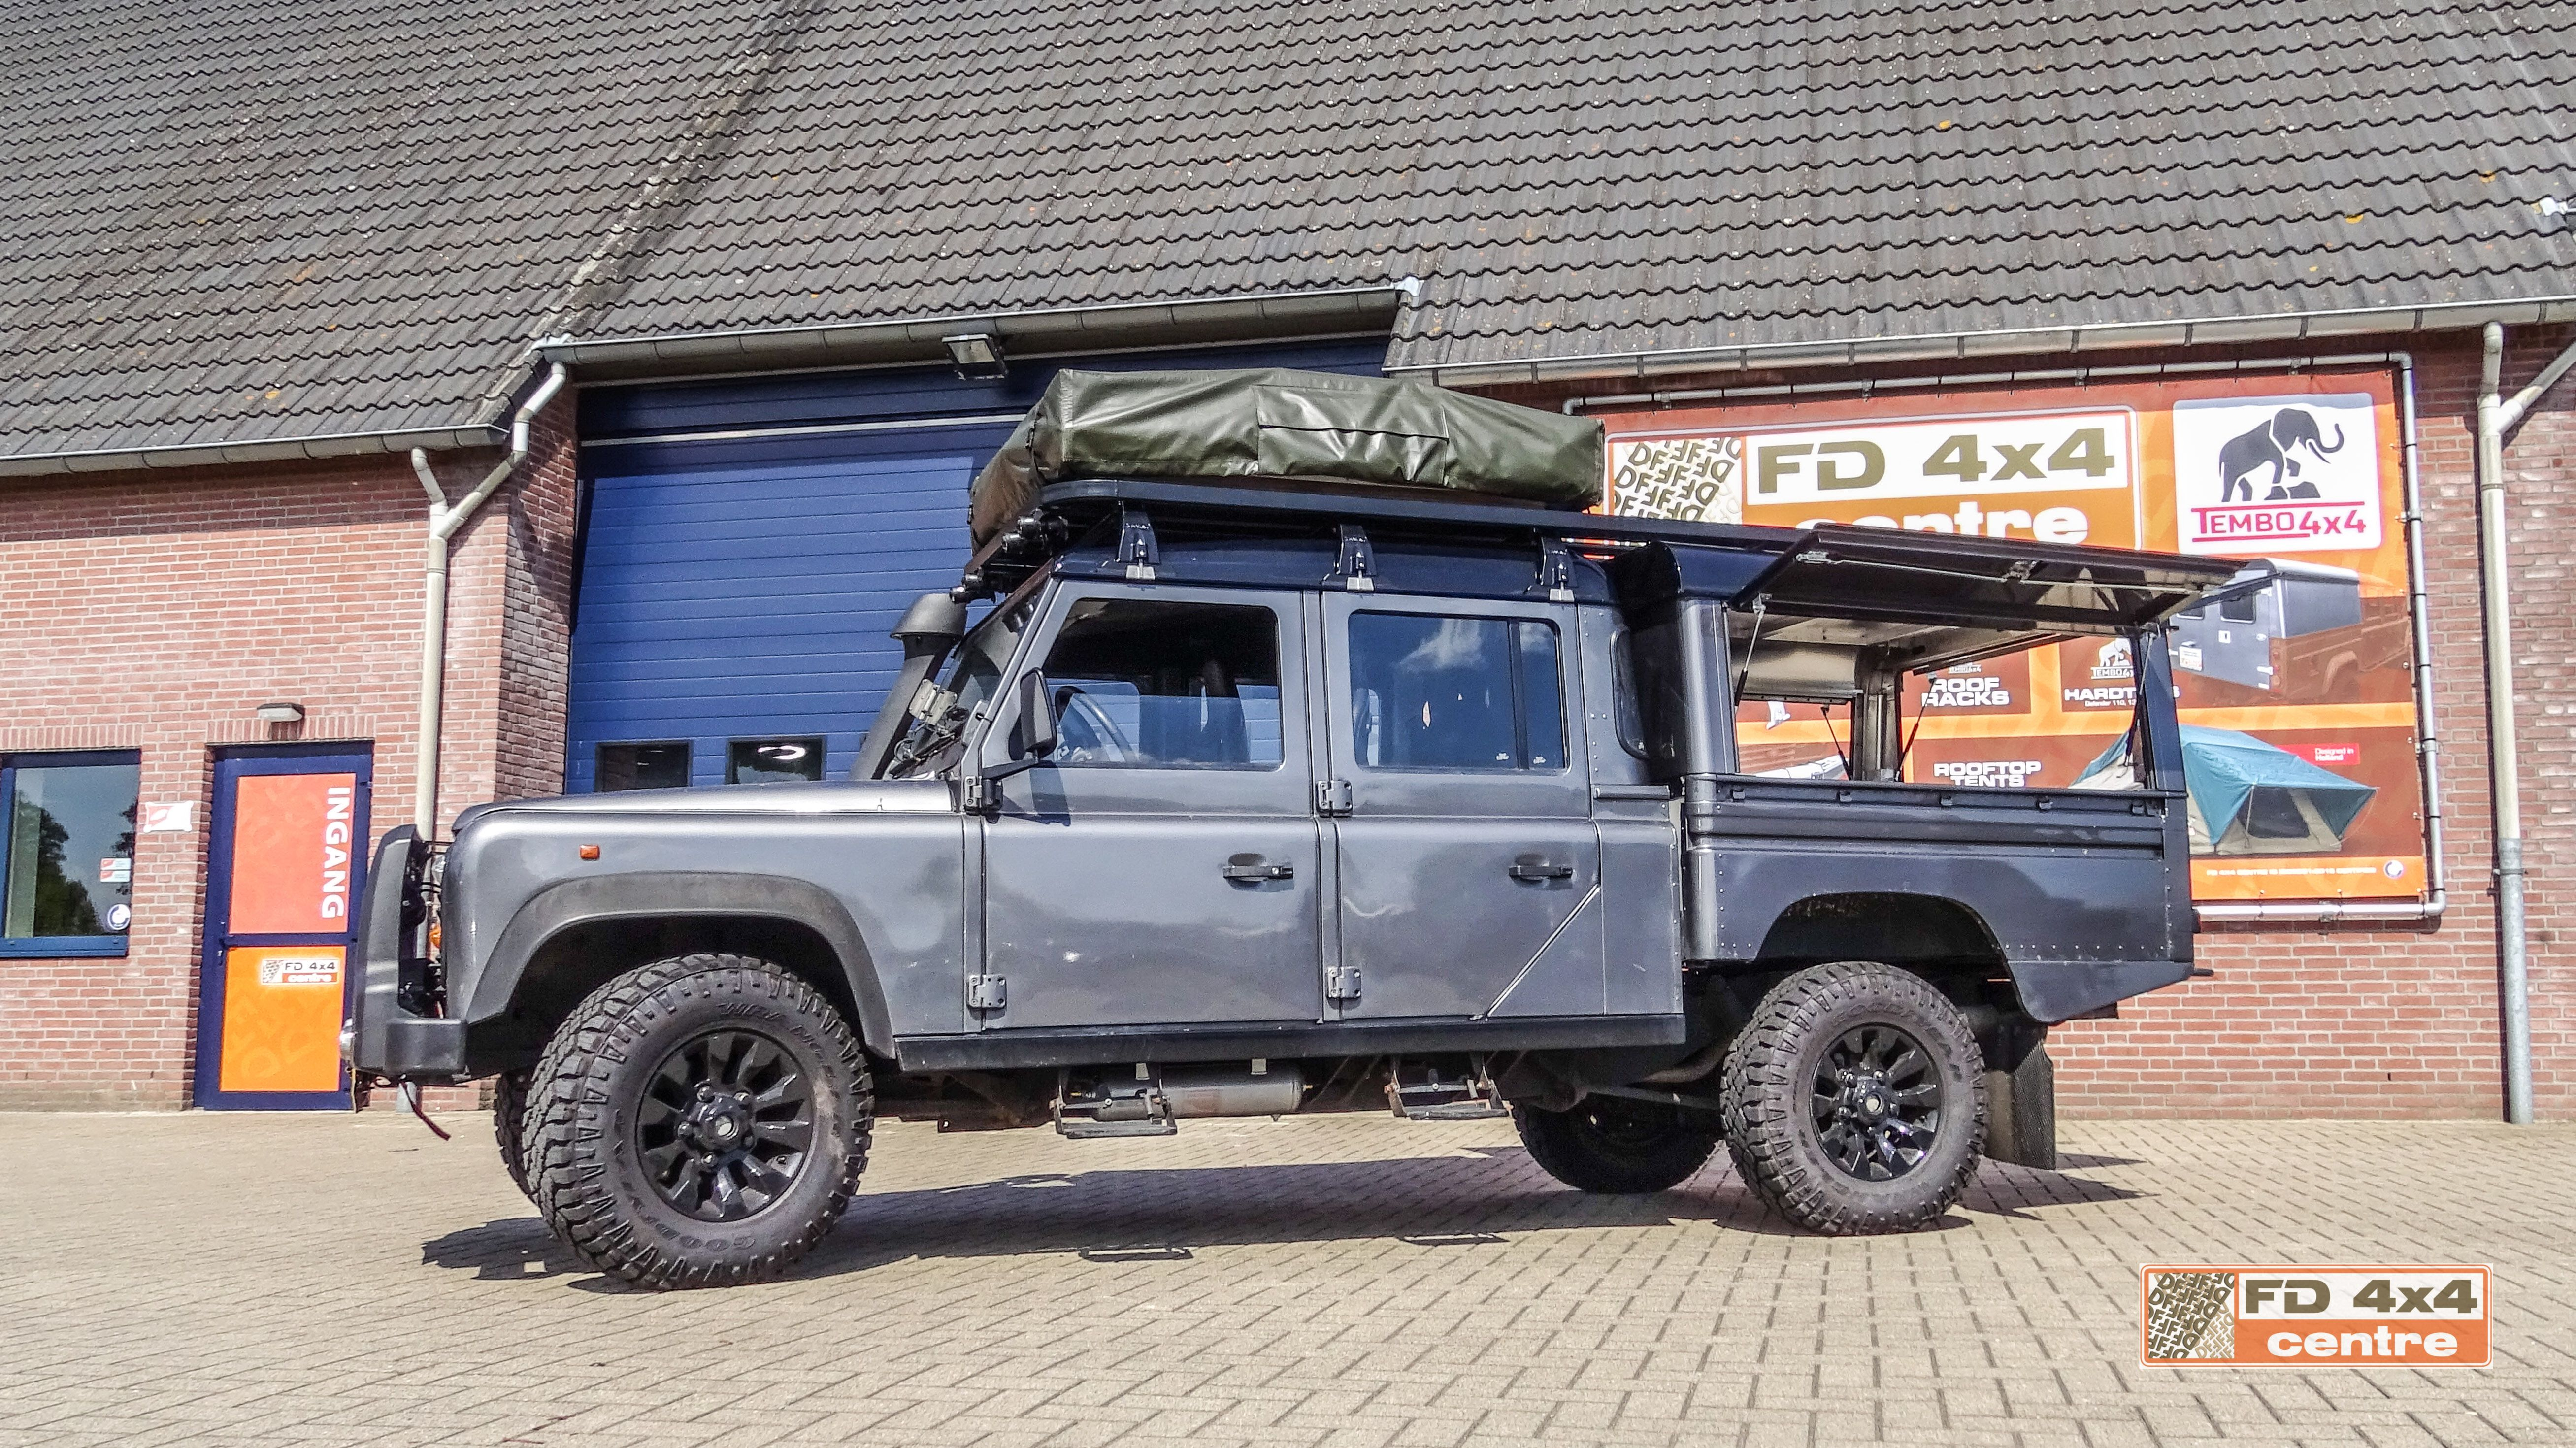 Tembo 4x4 hardtop and roof rack on a land rover defender 130